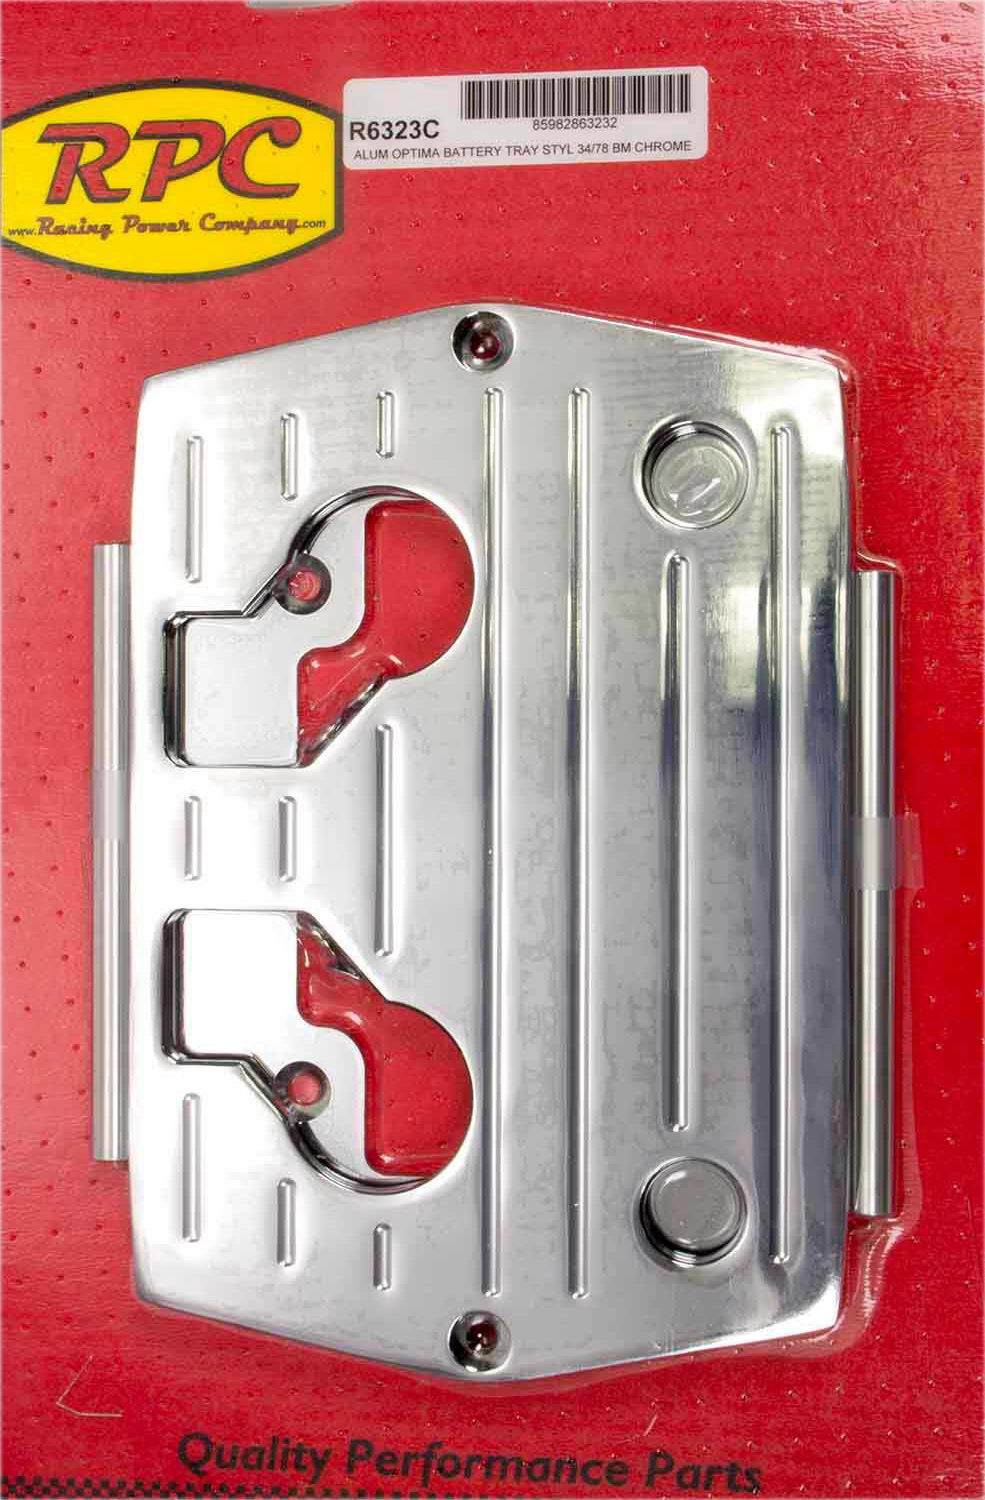 Racing Power Co-packaged Optima Alum Ball Milled Battery Tray Chrome